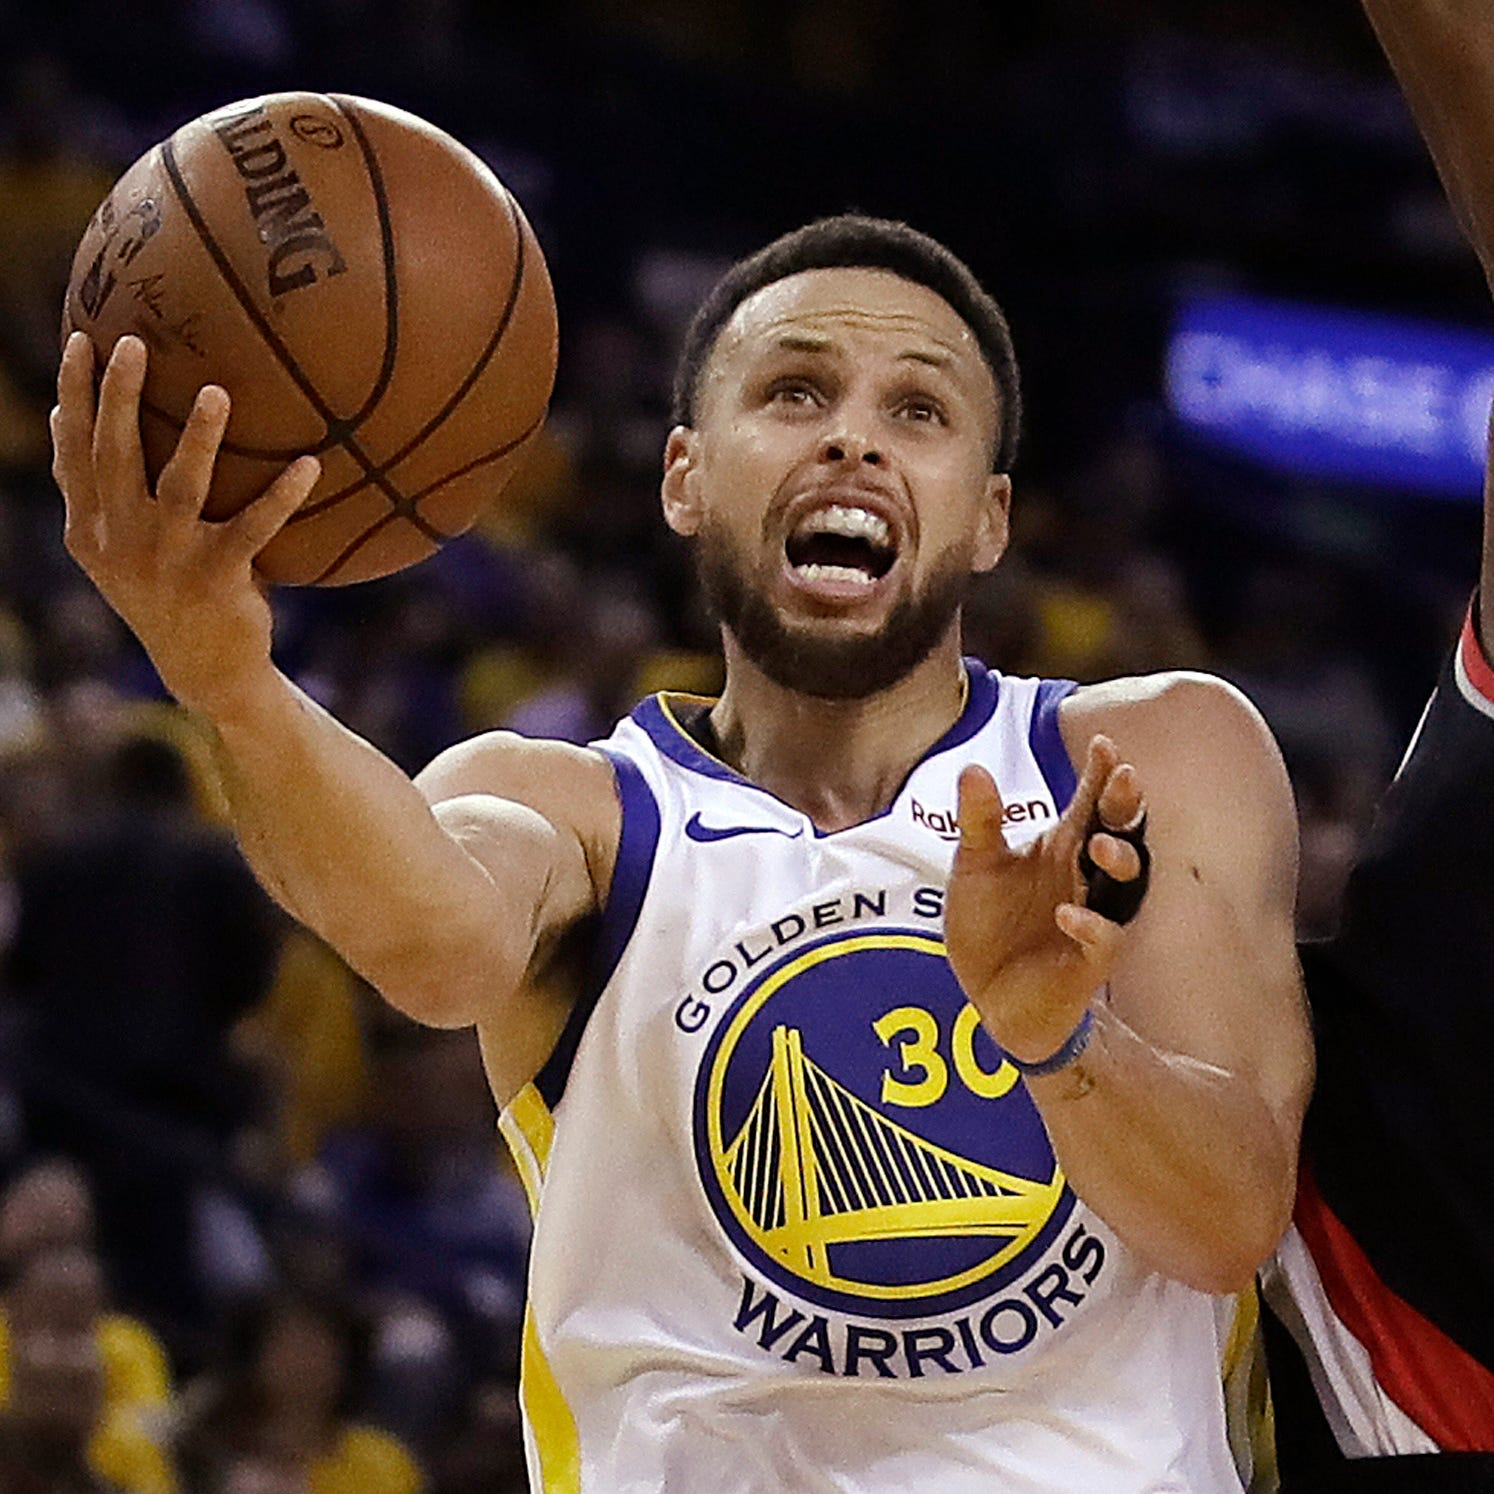 Stephen Curry was almost traded by Golden State Warriors to Phoenix Suns in 2009 NBA draft